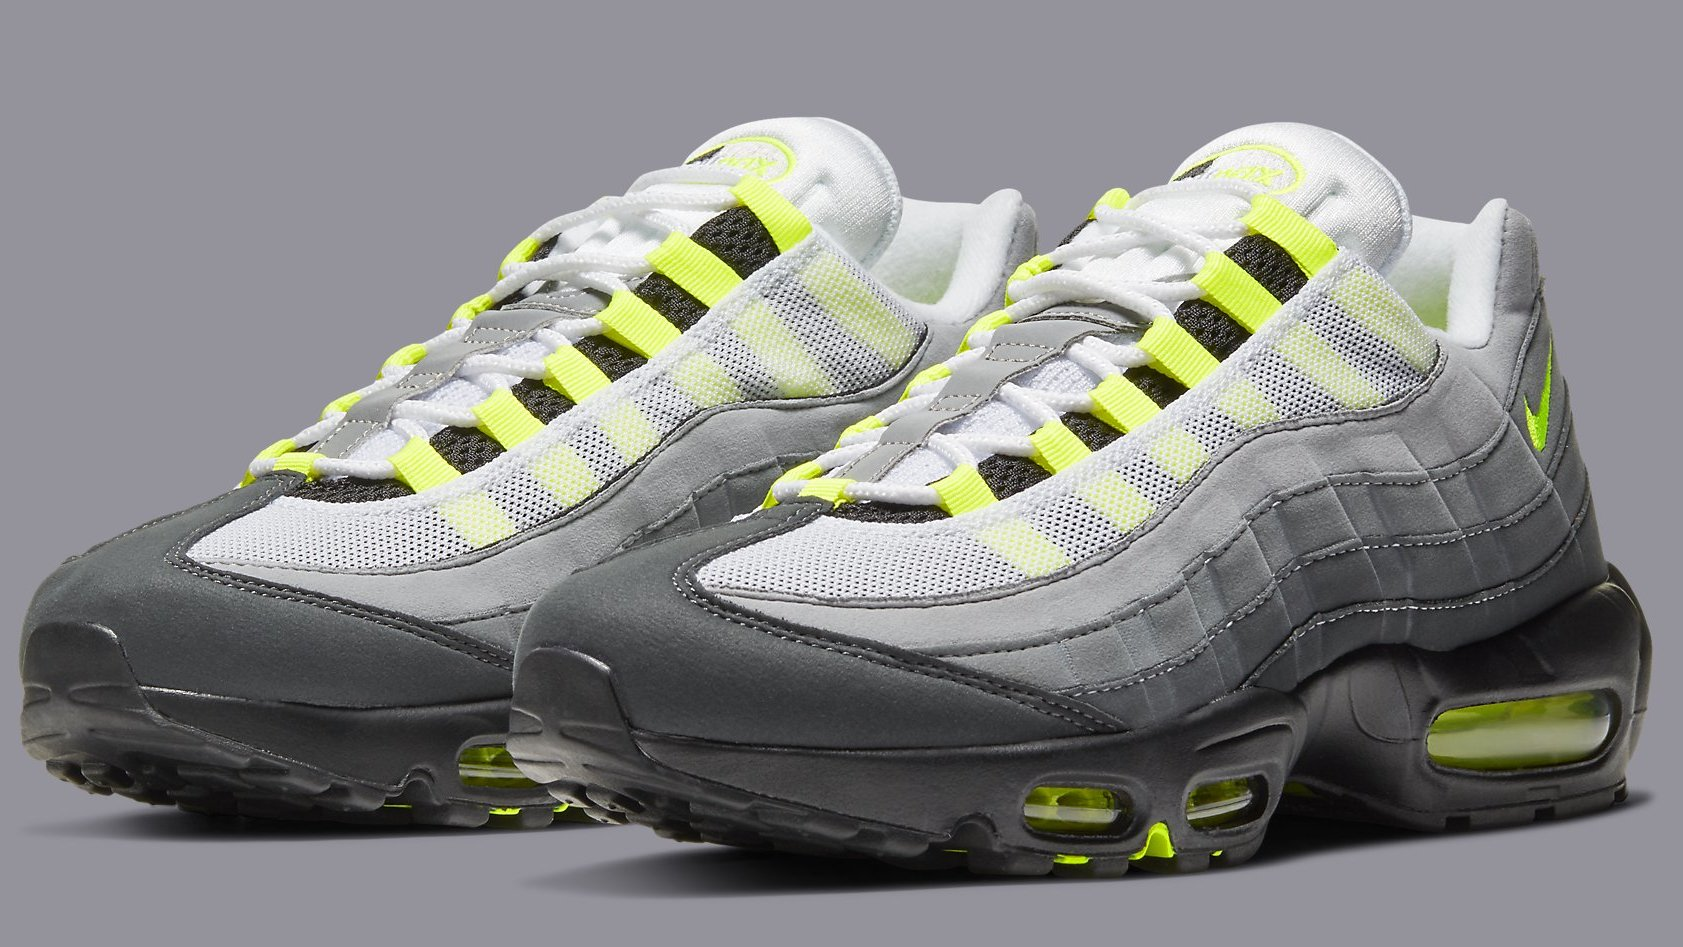 nike air max 95 orange fluo - (categoryid=1) - Cheap price - Up to ...